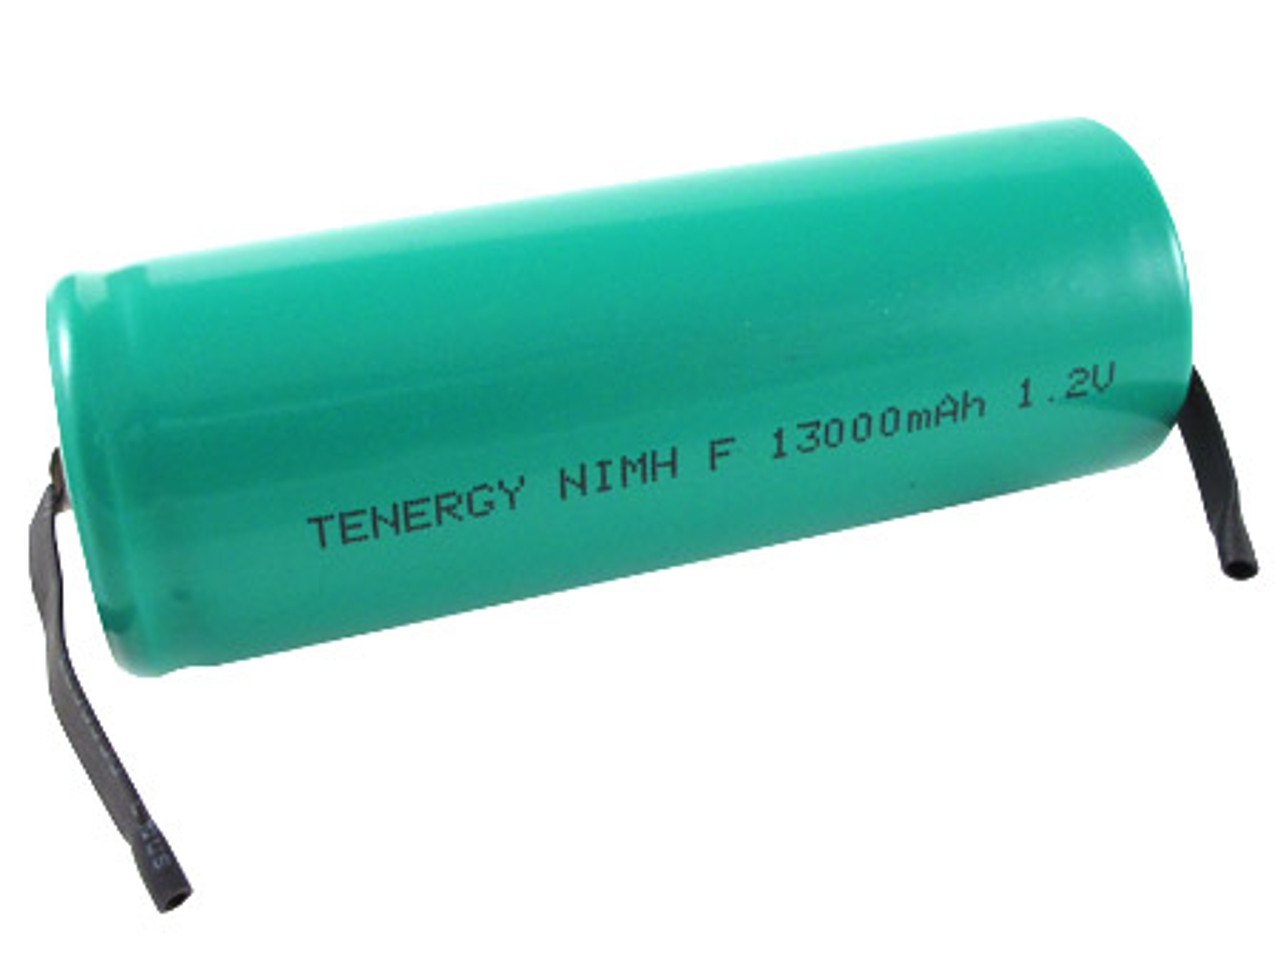 Tenergy F Size 1.2 V 13000mAh NiMH Flat Top Rechargeable Battery